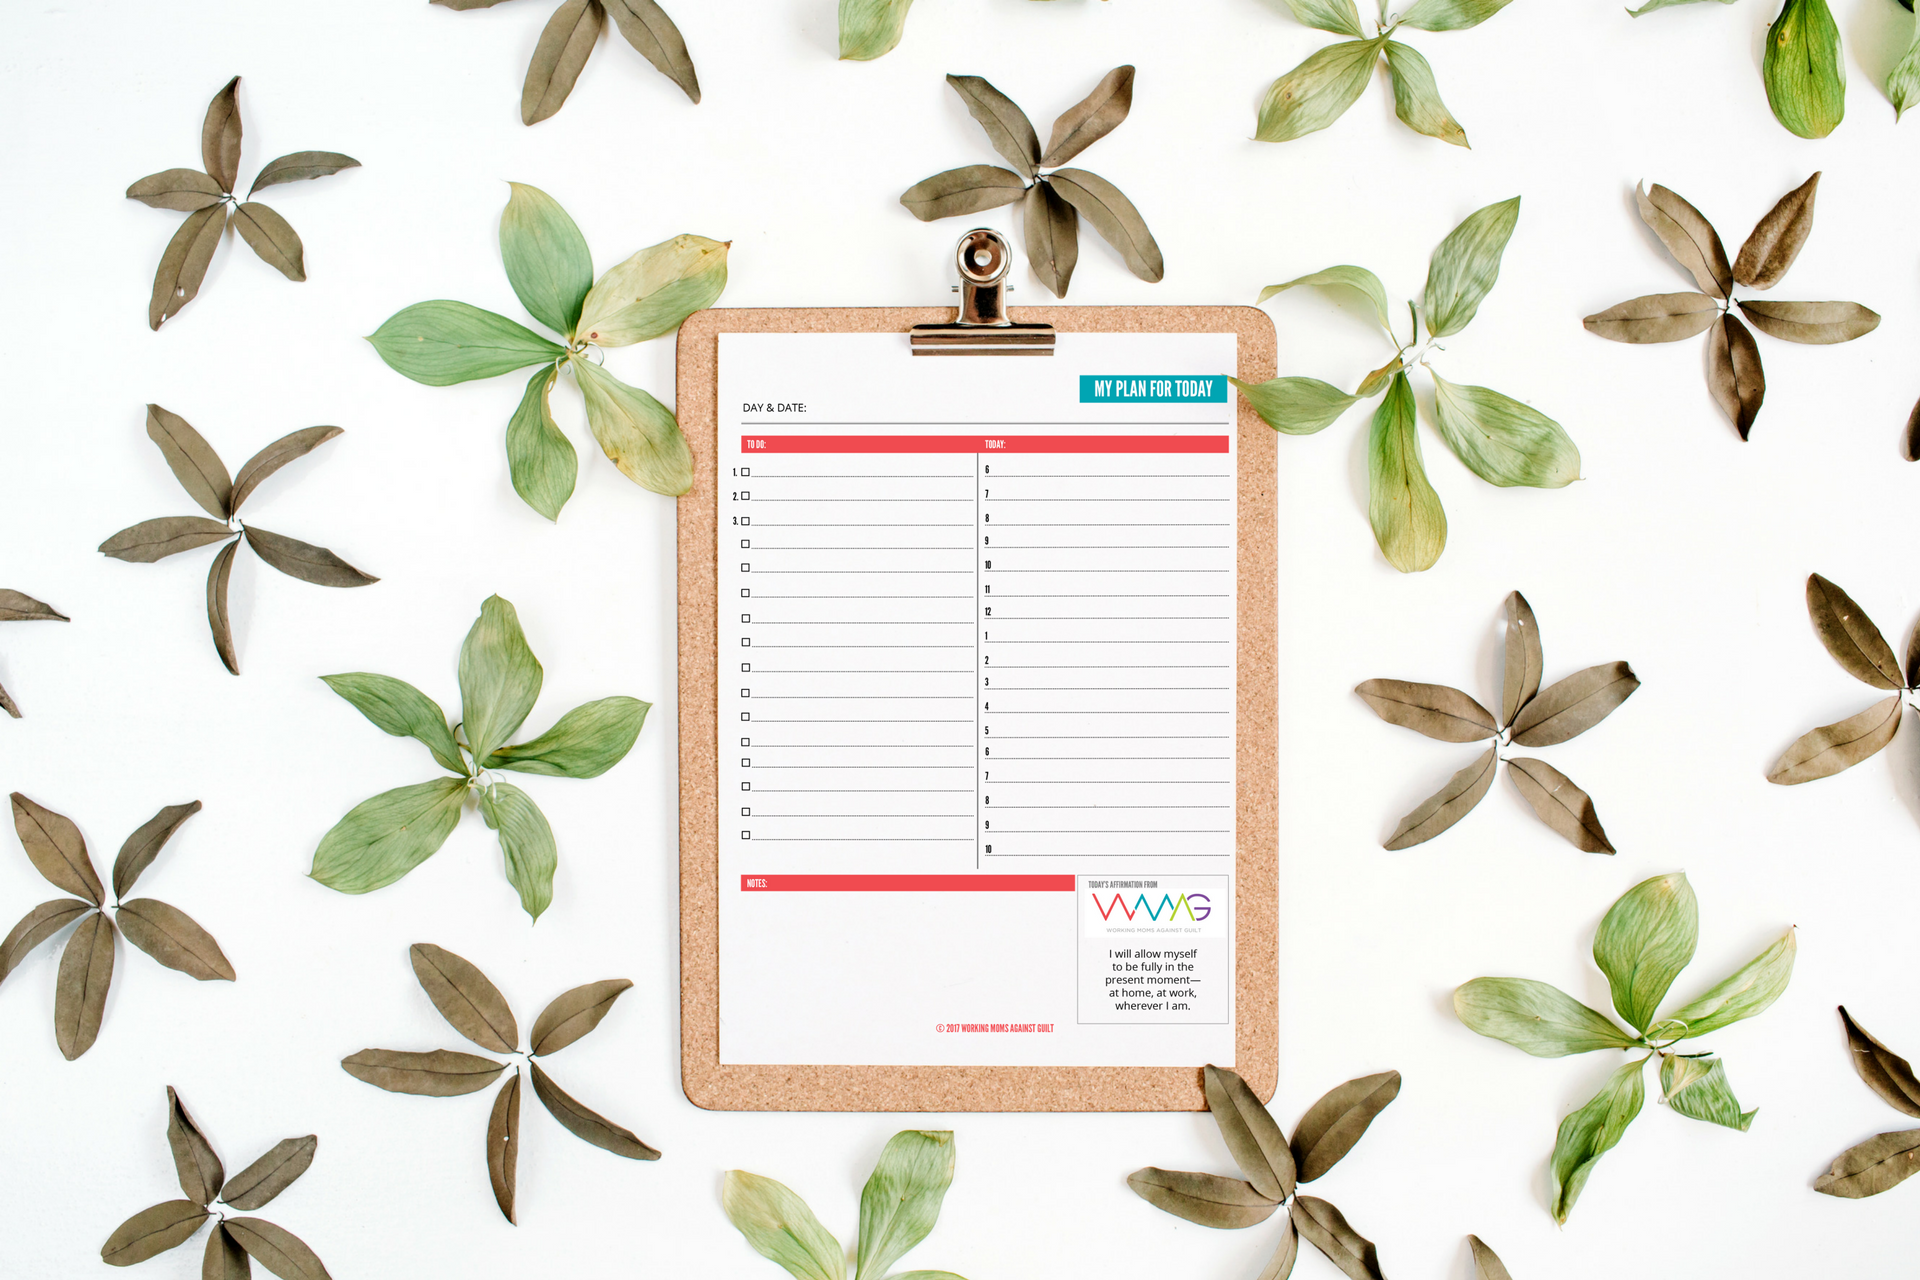 Enough jumping between calendars and apps on your phone and laptop! Try this super-simple, inspirational Daily Planner for Working Moms (free printable).